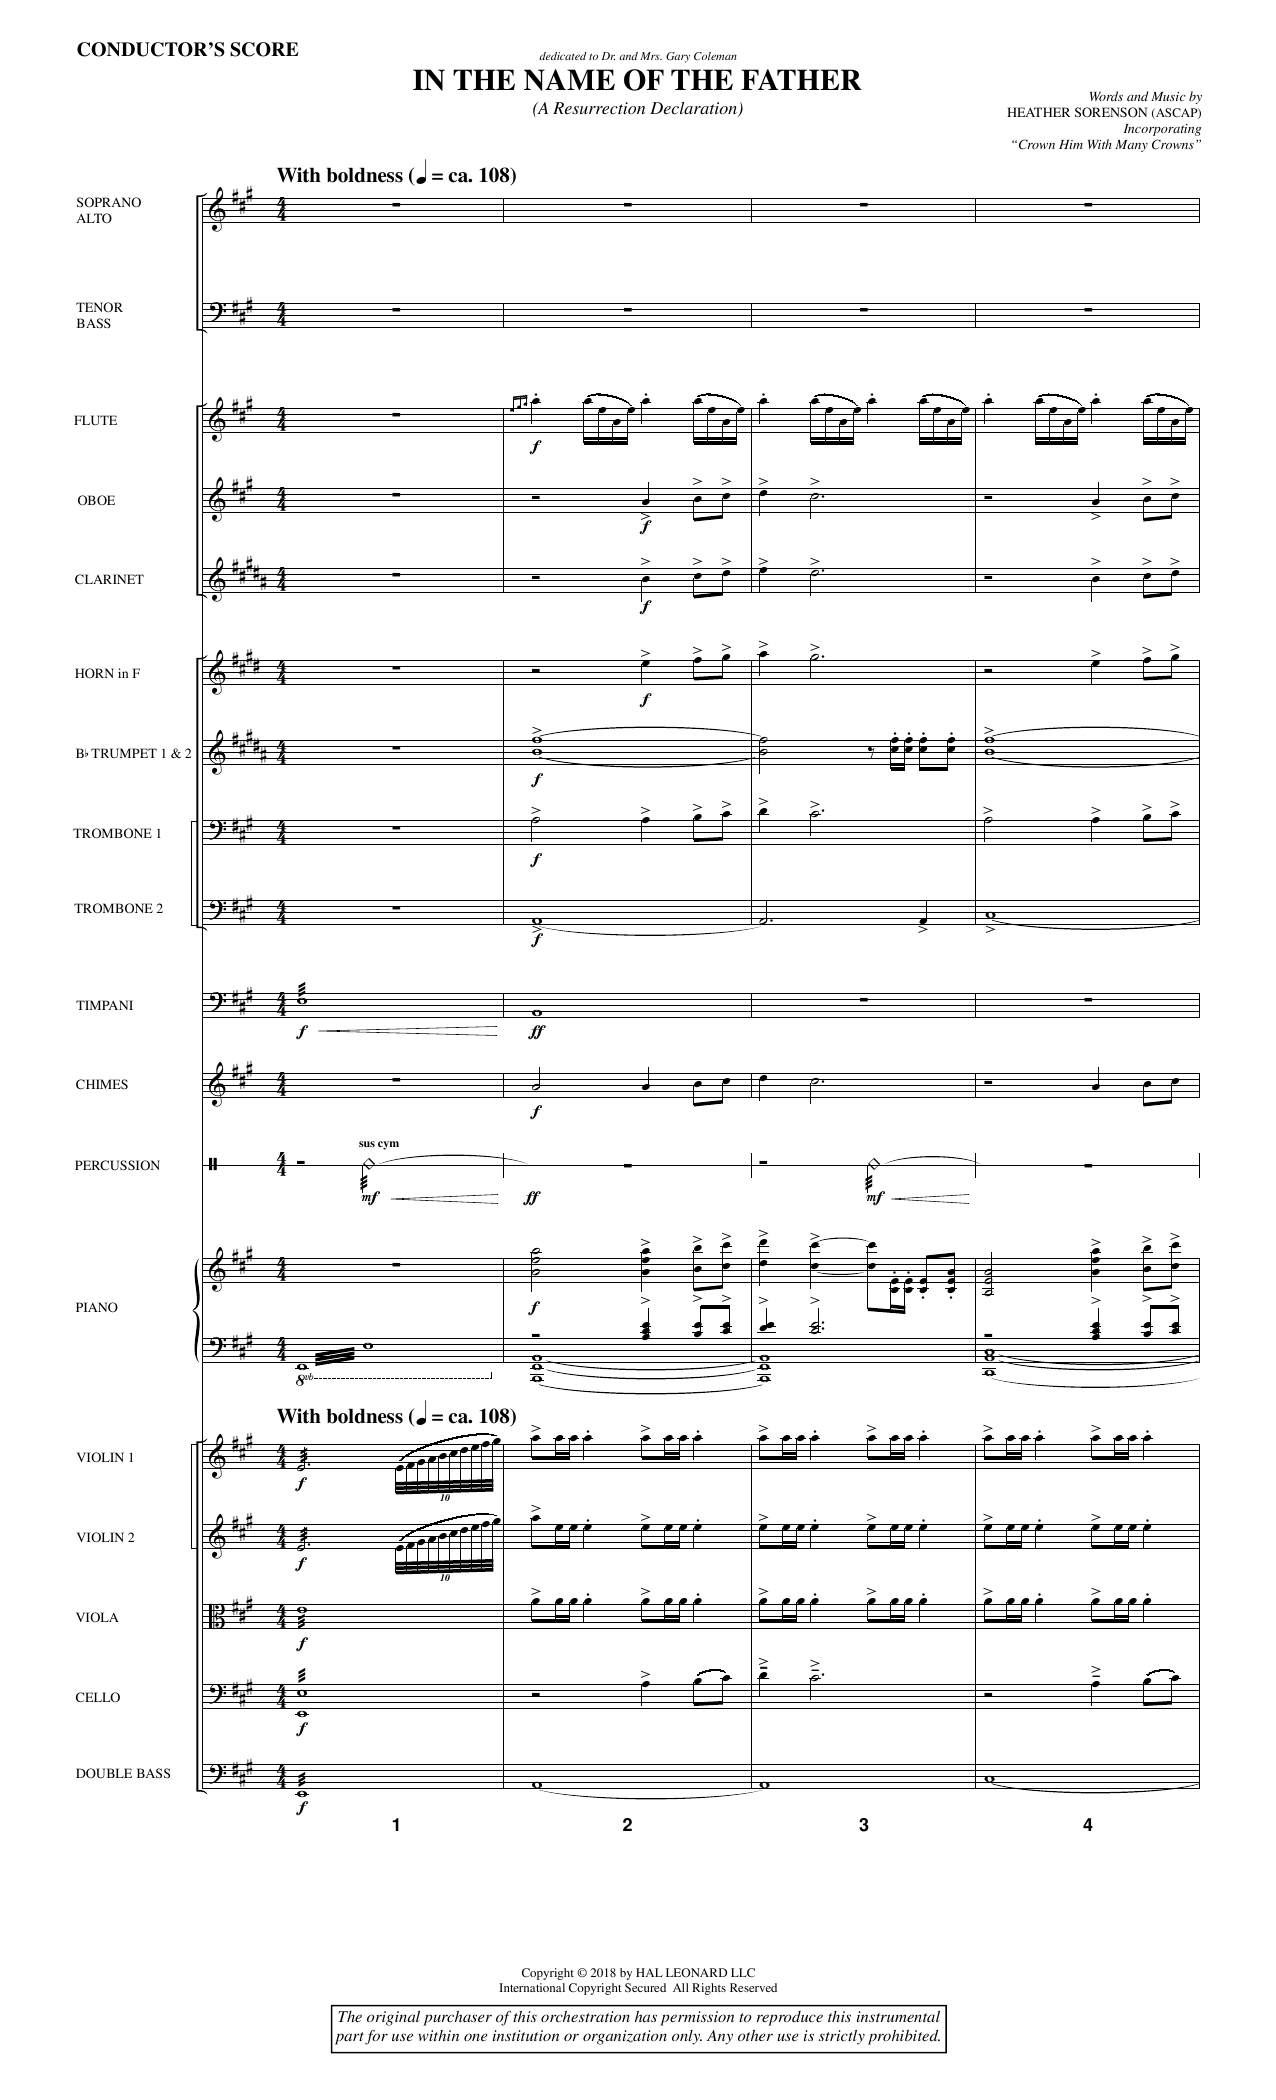 Heather Sorenson In the Name of the Father (A Resurrection Declaration) - Full Score sheet music notes and chords. Download Printable PDF.